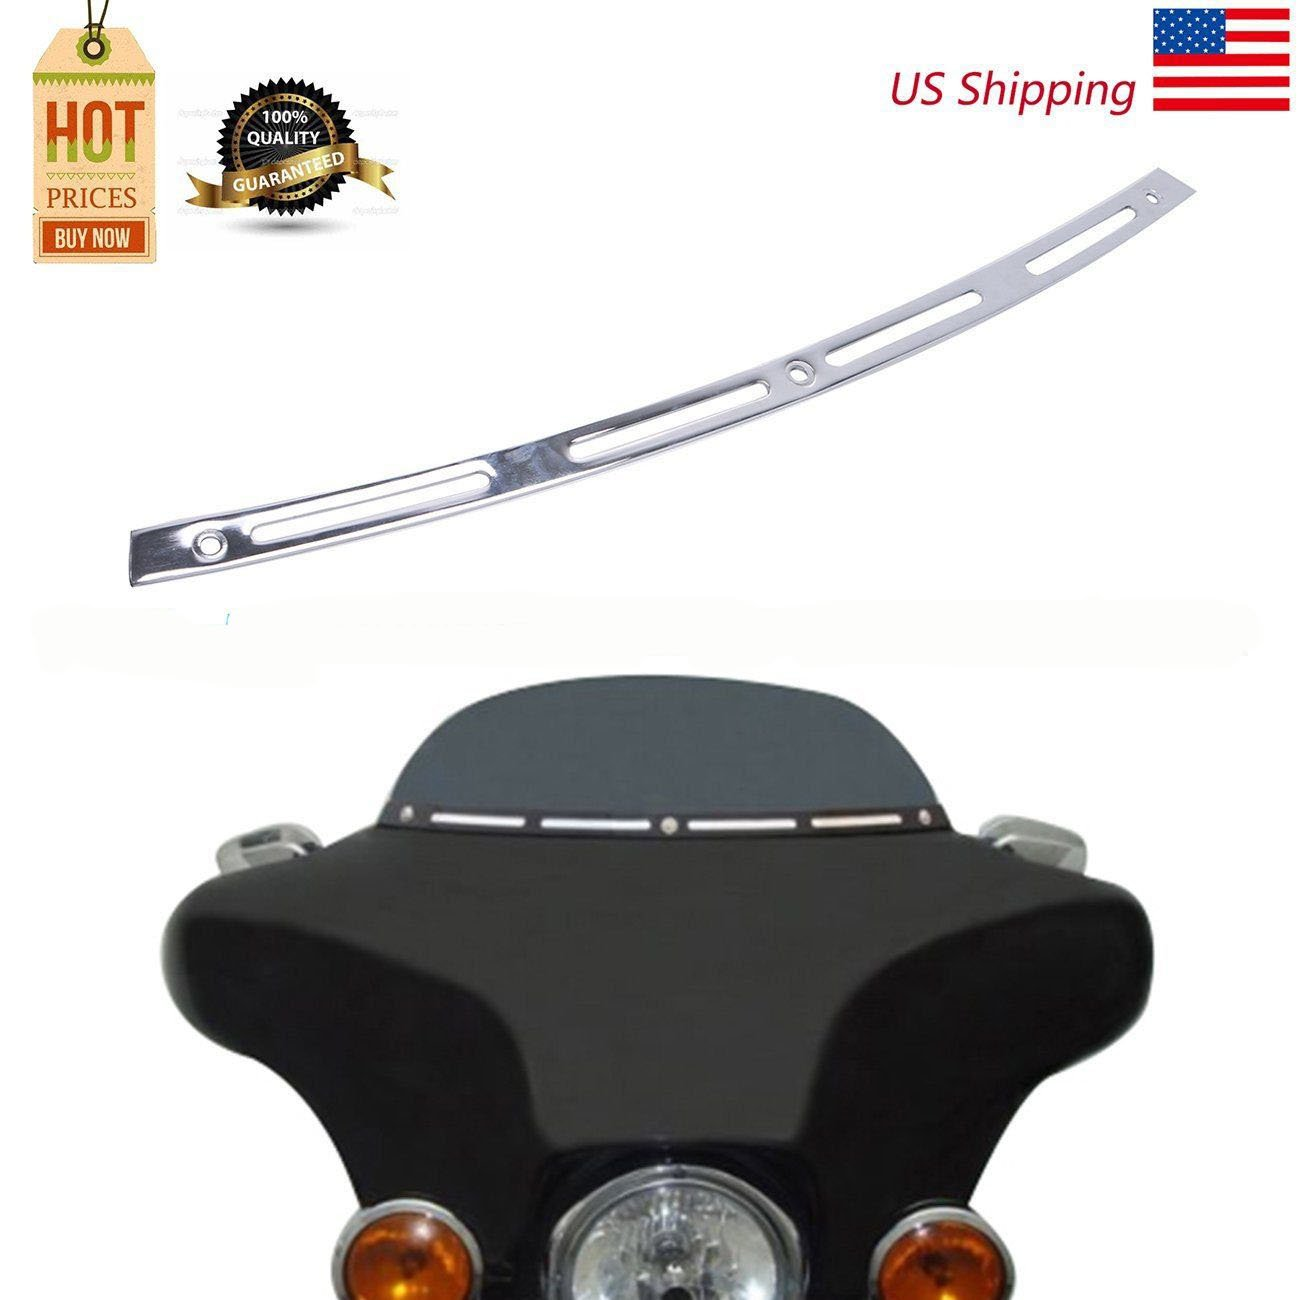 Chrome Metal Slotted Windshield Trim For 1996-2013 Harley Davidson TOURING BAGGER BATWING BOXWELOVE